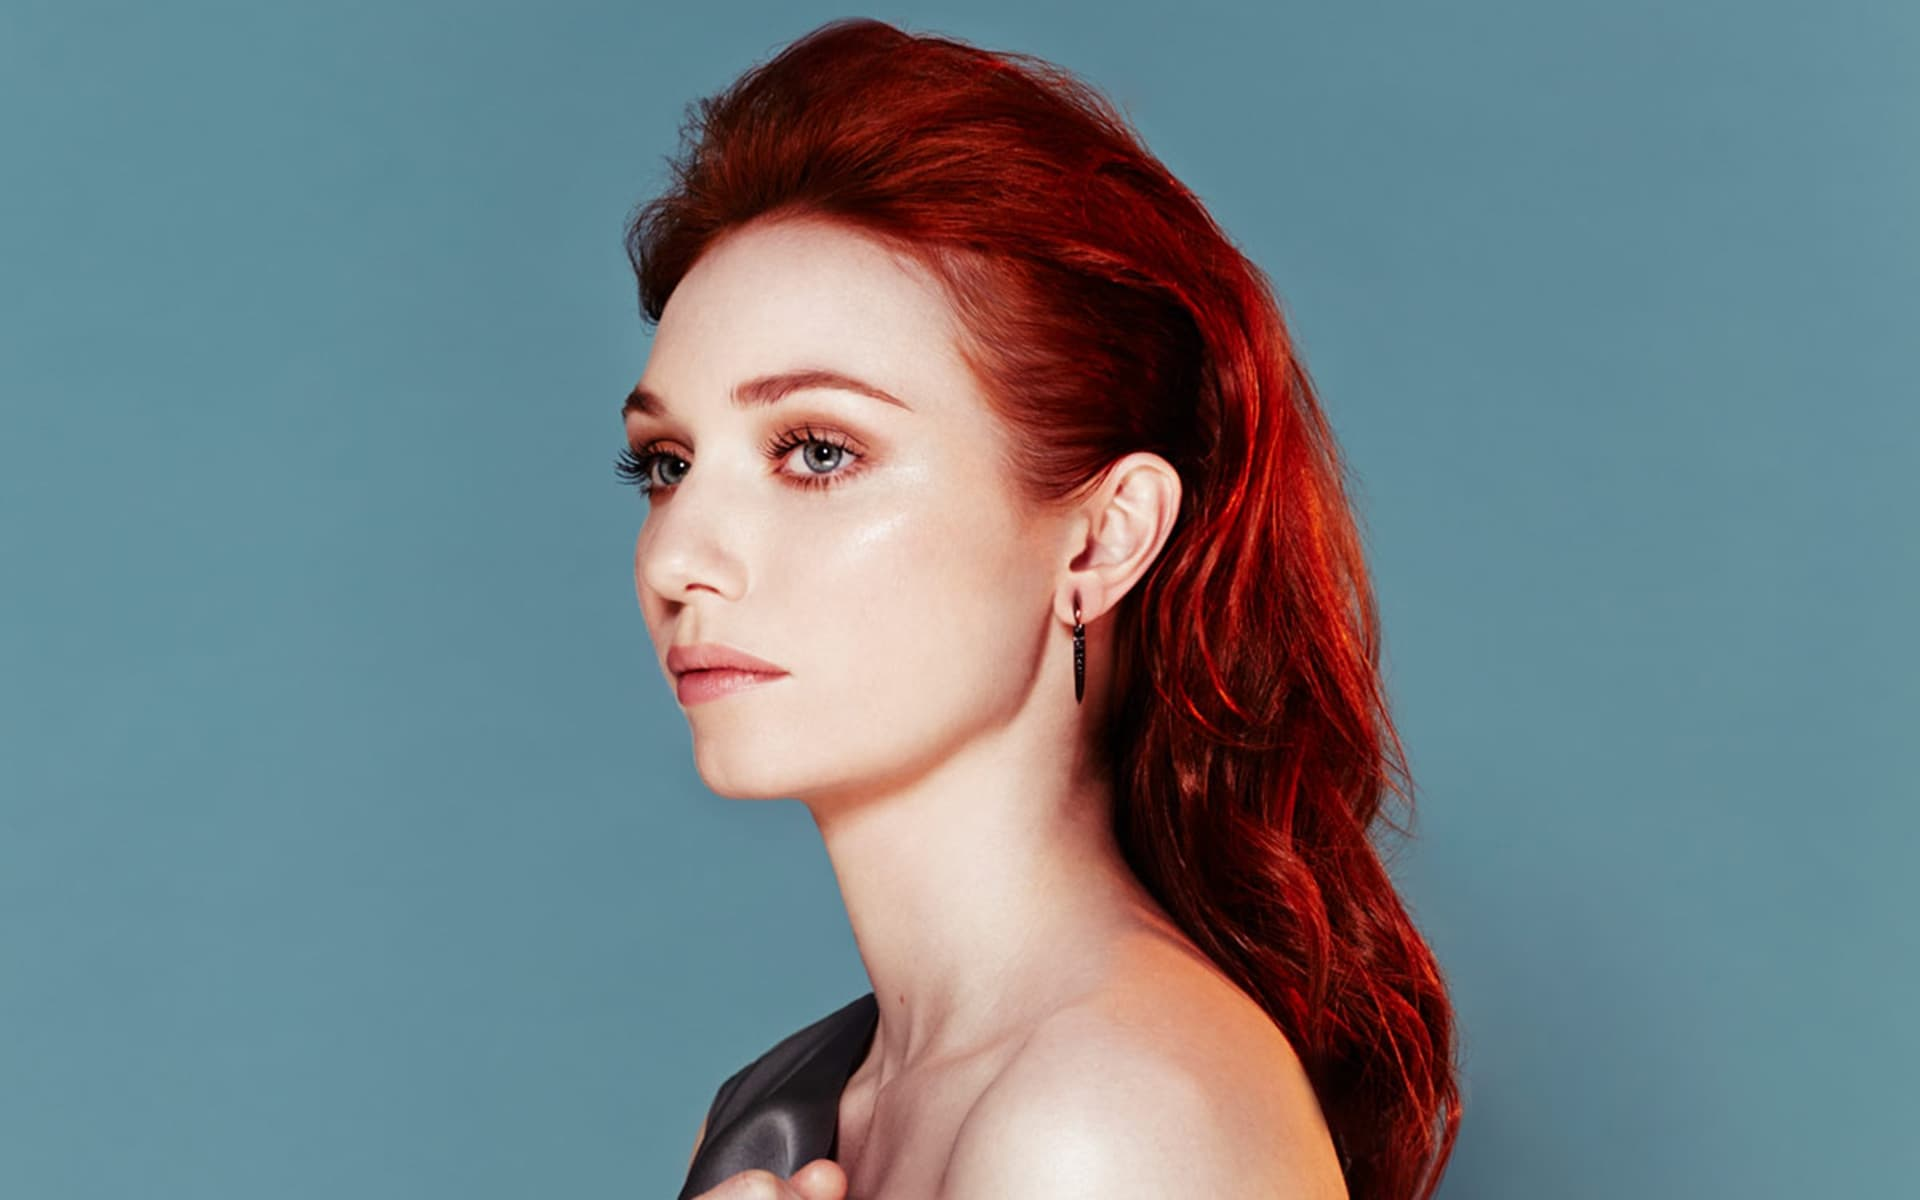 Ass Is a cute Eleanor Tomlinson naked photo 2017